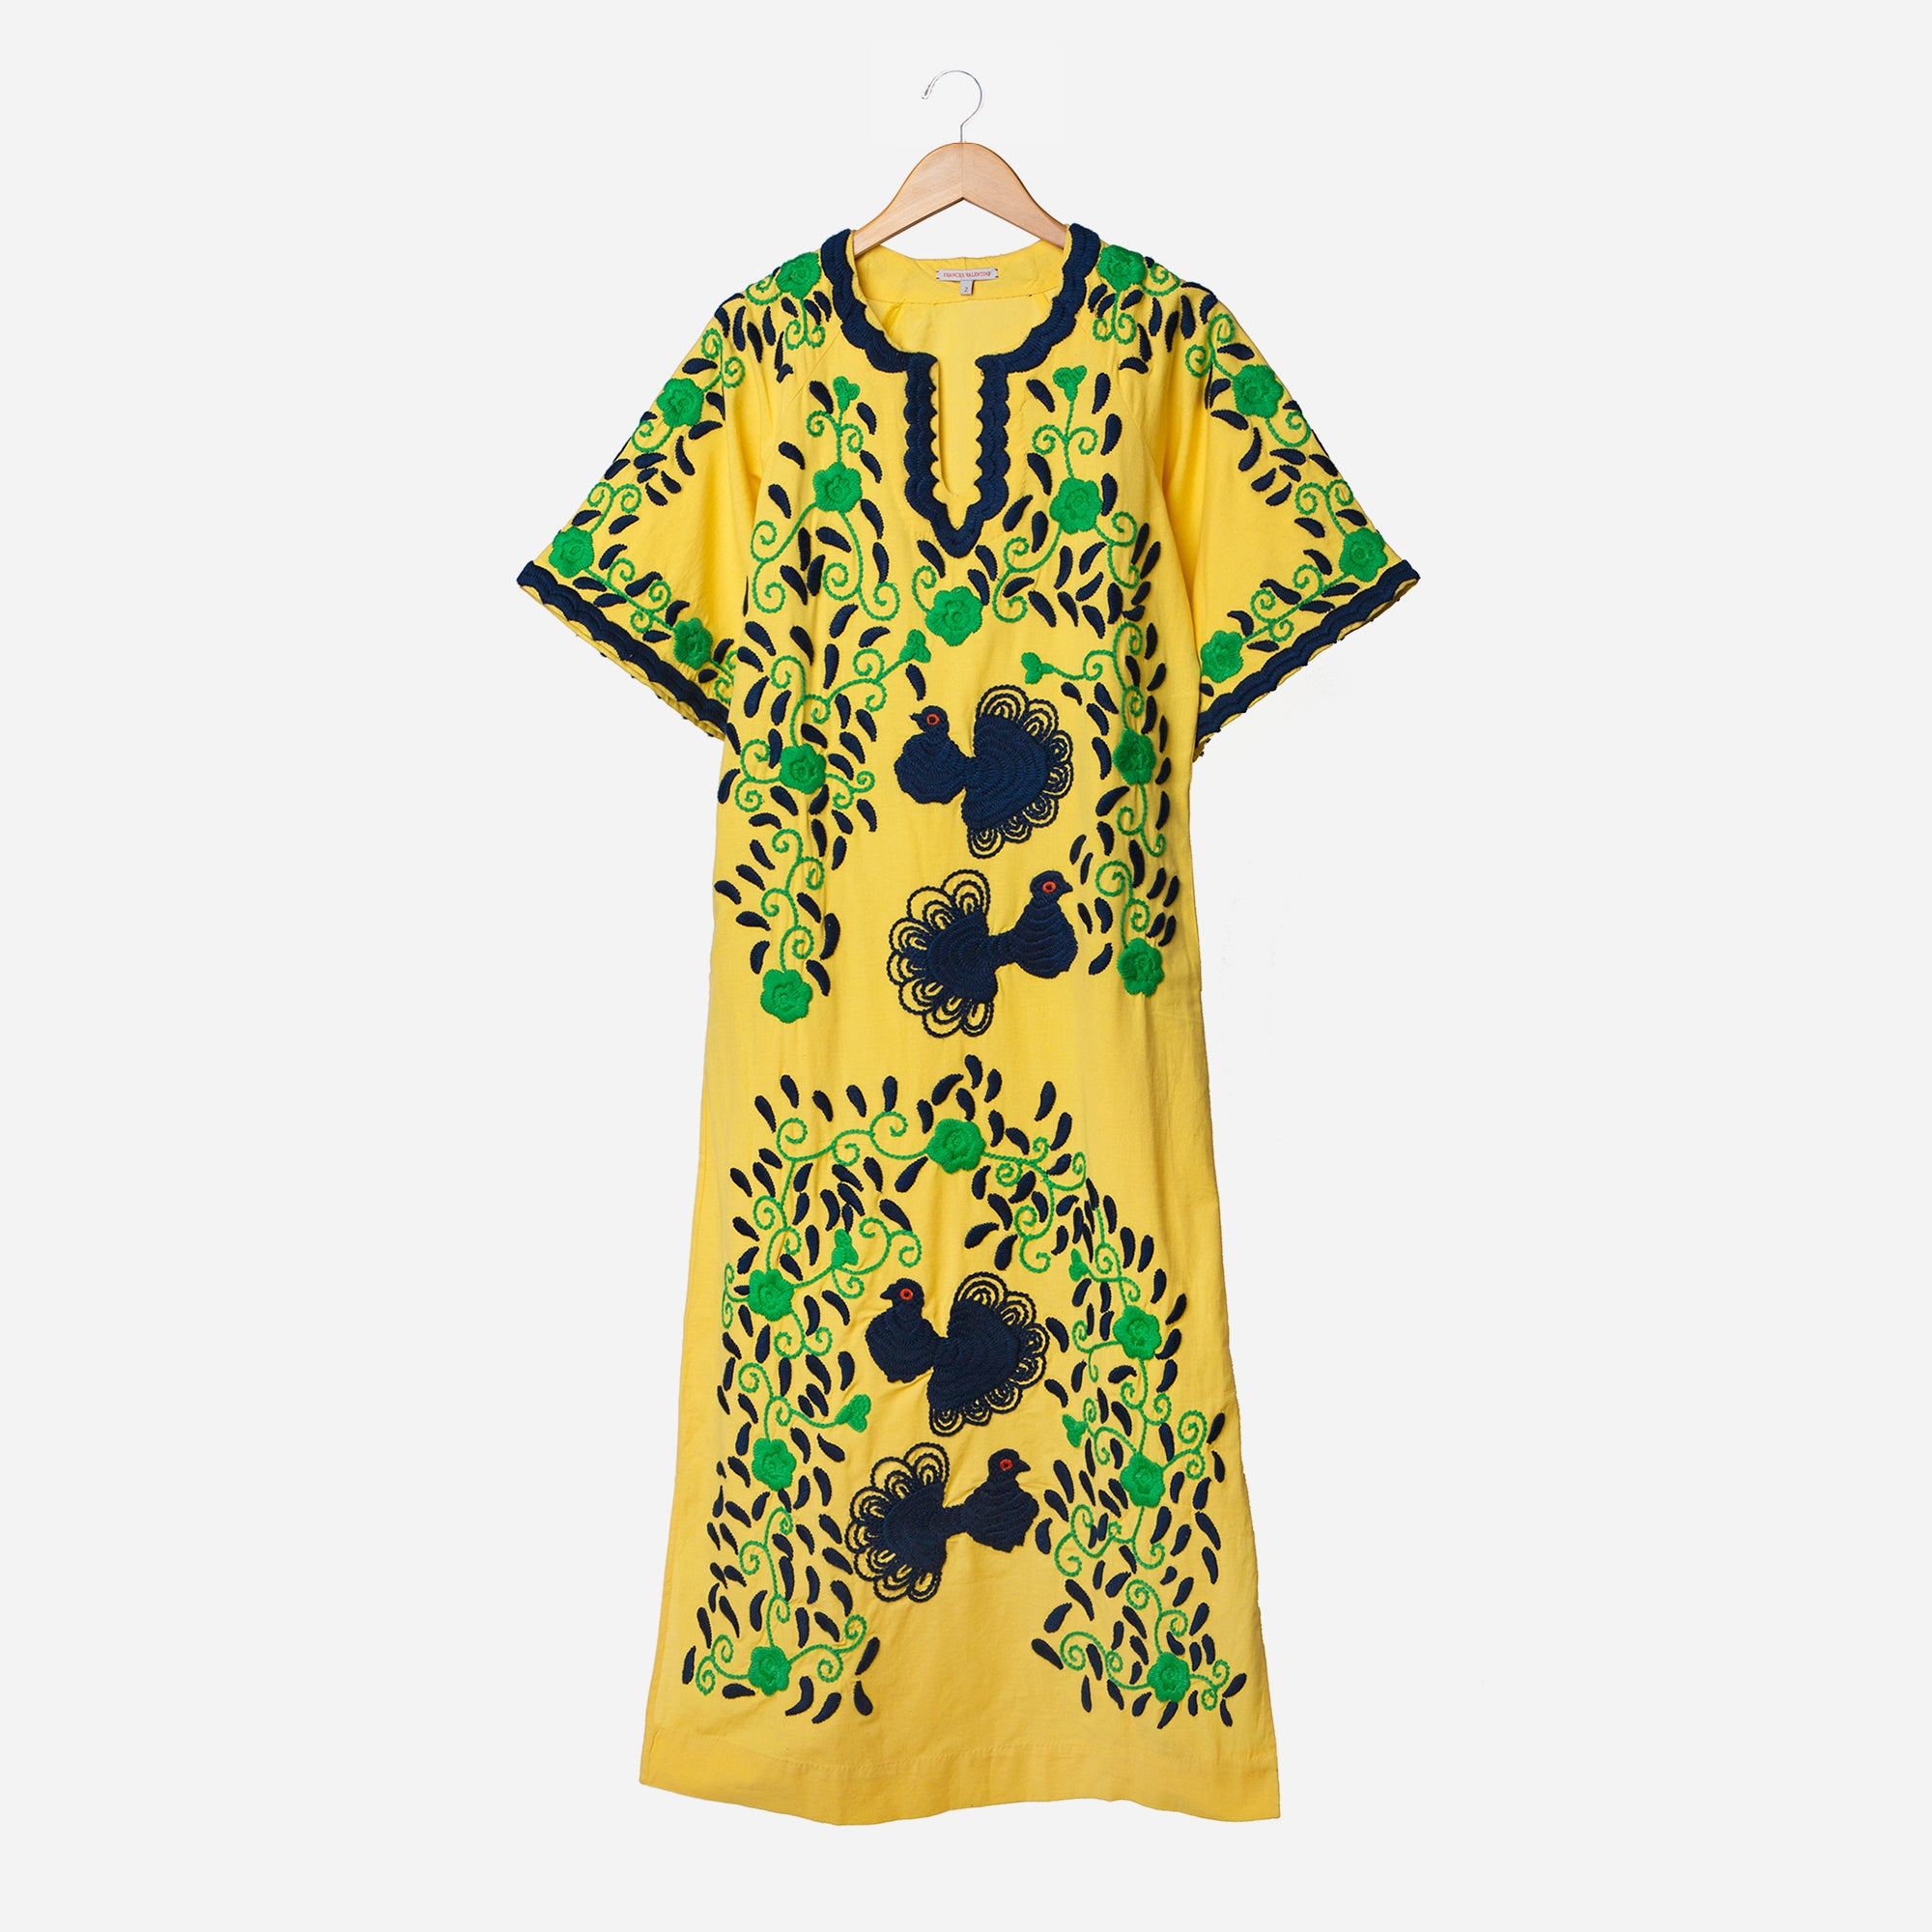 Peacock Colorful  Caftan Dress Yellow Green Navy